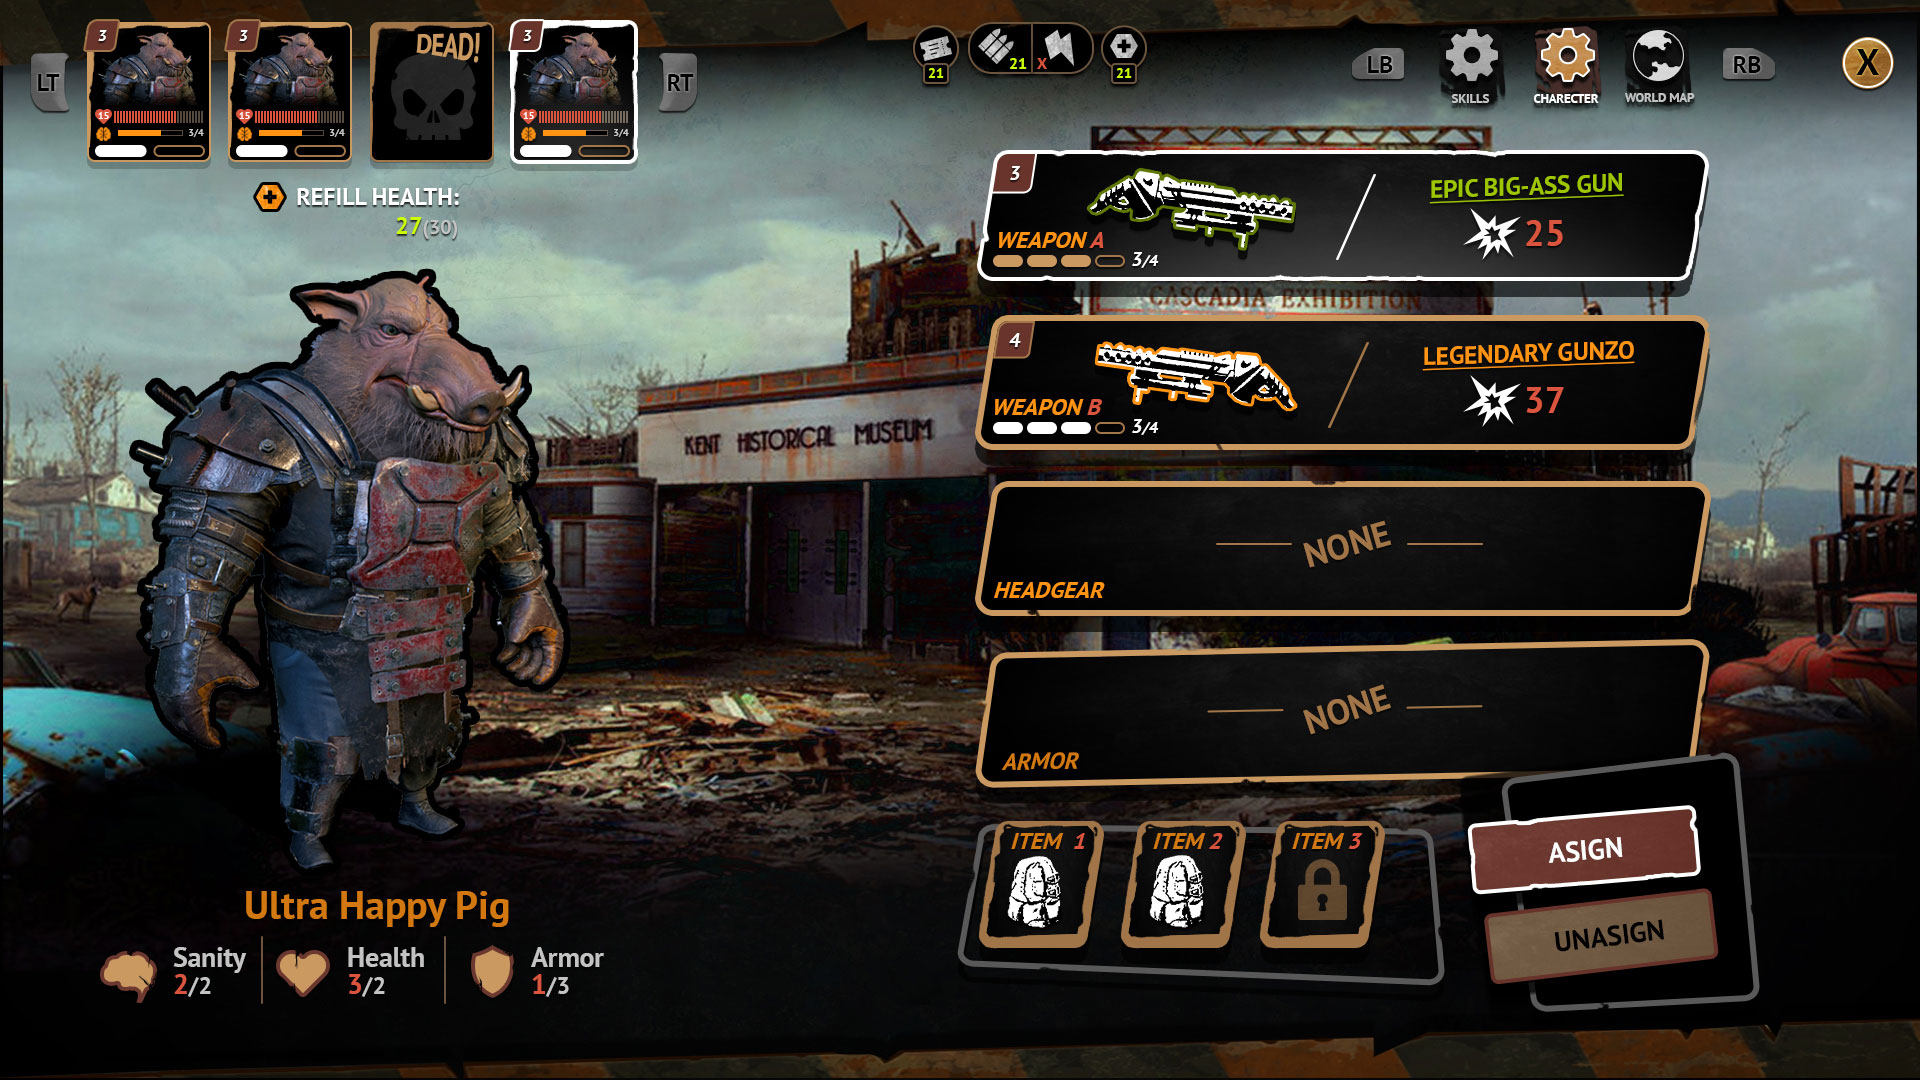 funcom-ui-gameinterface-gameart-roadtoeden-ps4-xbox-tactical-adventure-game-xcom-turn-based-gameux-game-experience-style03